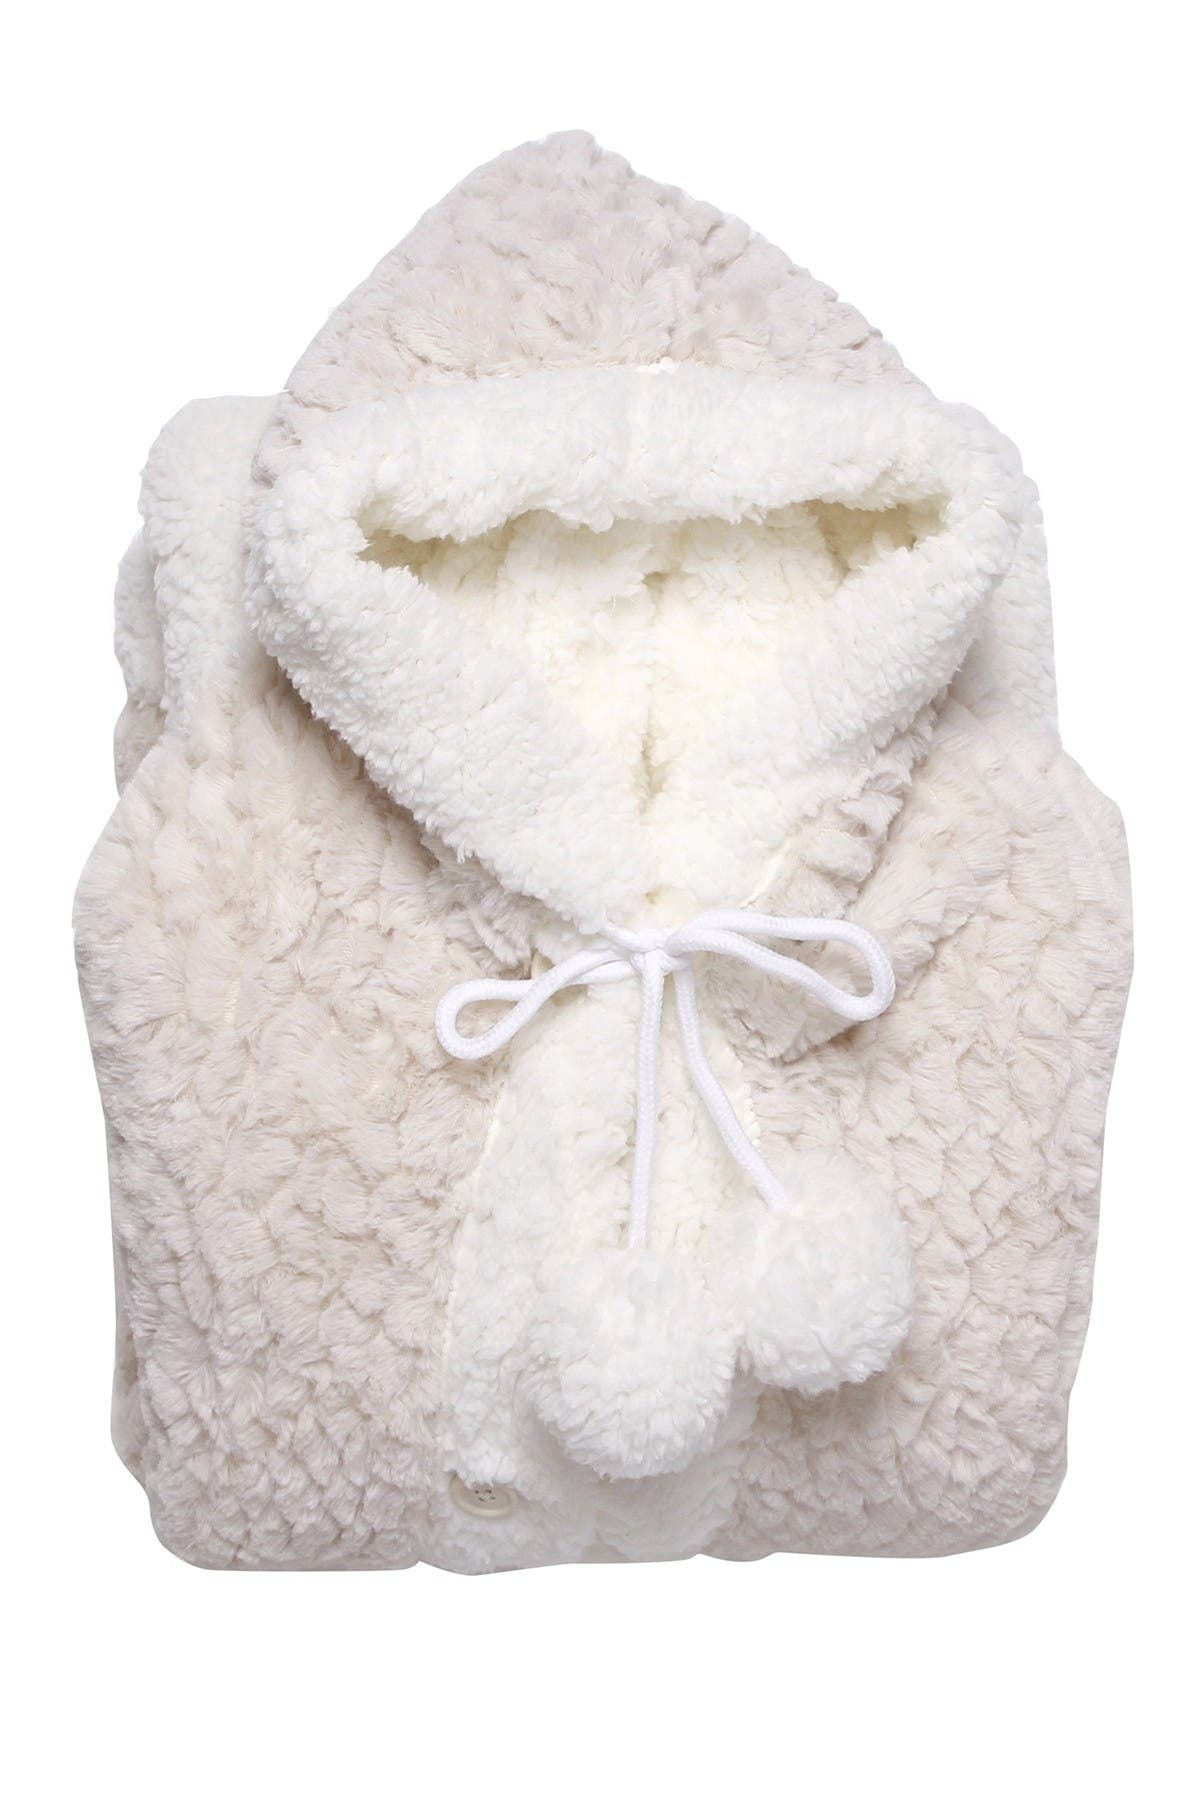 Image of Chic Home Bedding Jinny Faux Shearling Lined Hooded Wearable Blanket - Beige